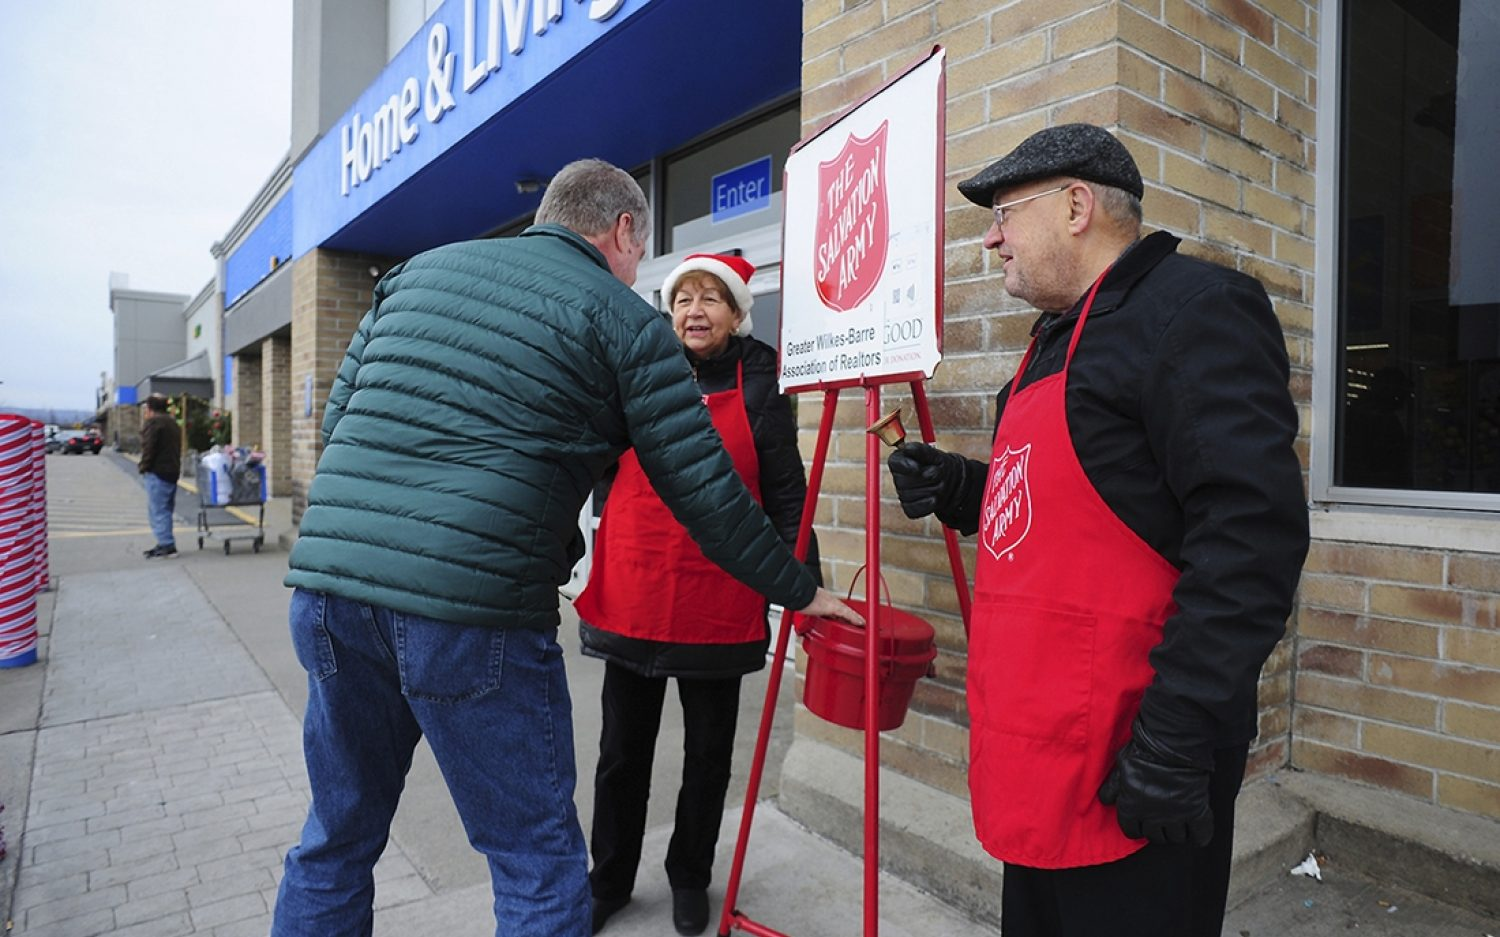 Bell ringers collect gift that glitters